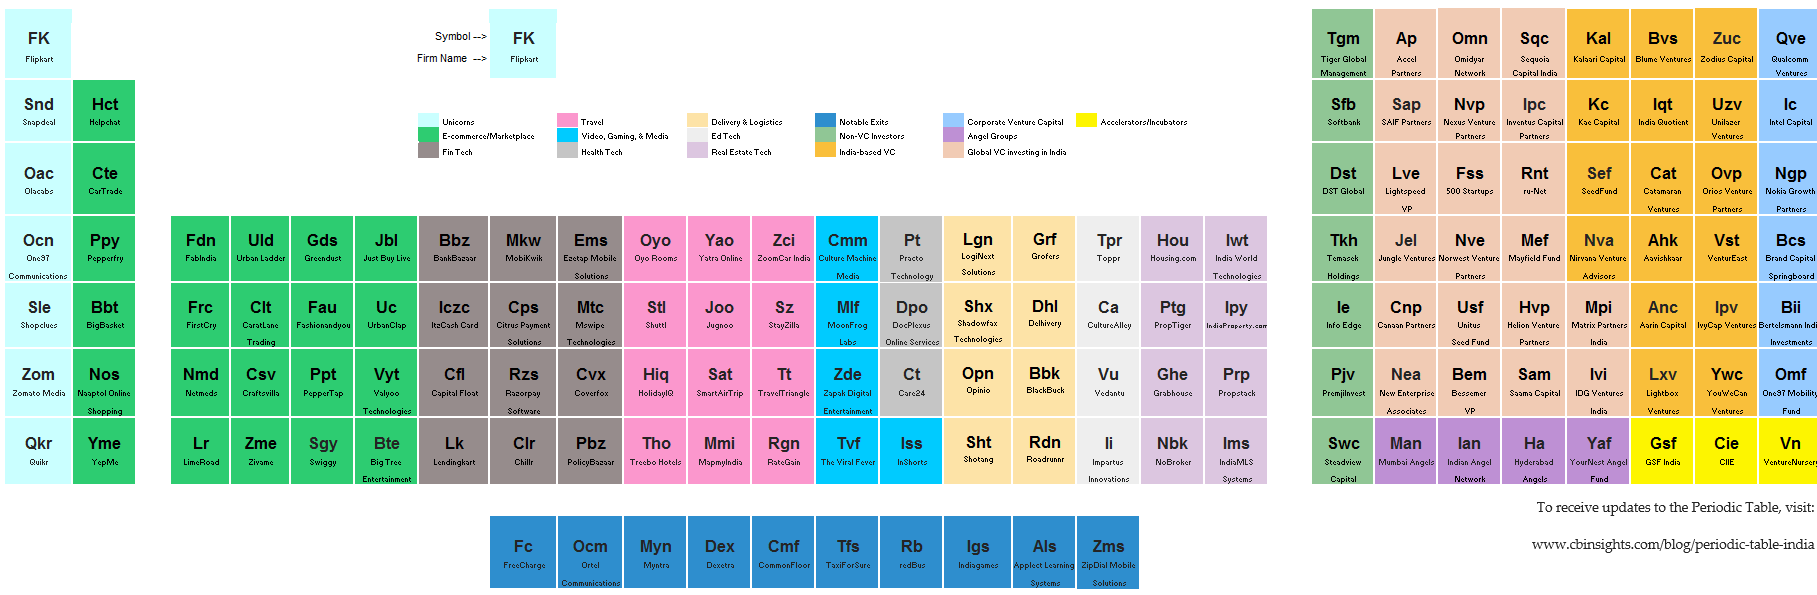 India_periodic.table_excel_2.16__feature.image_v5